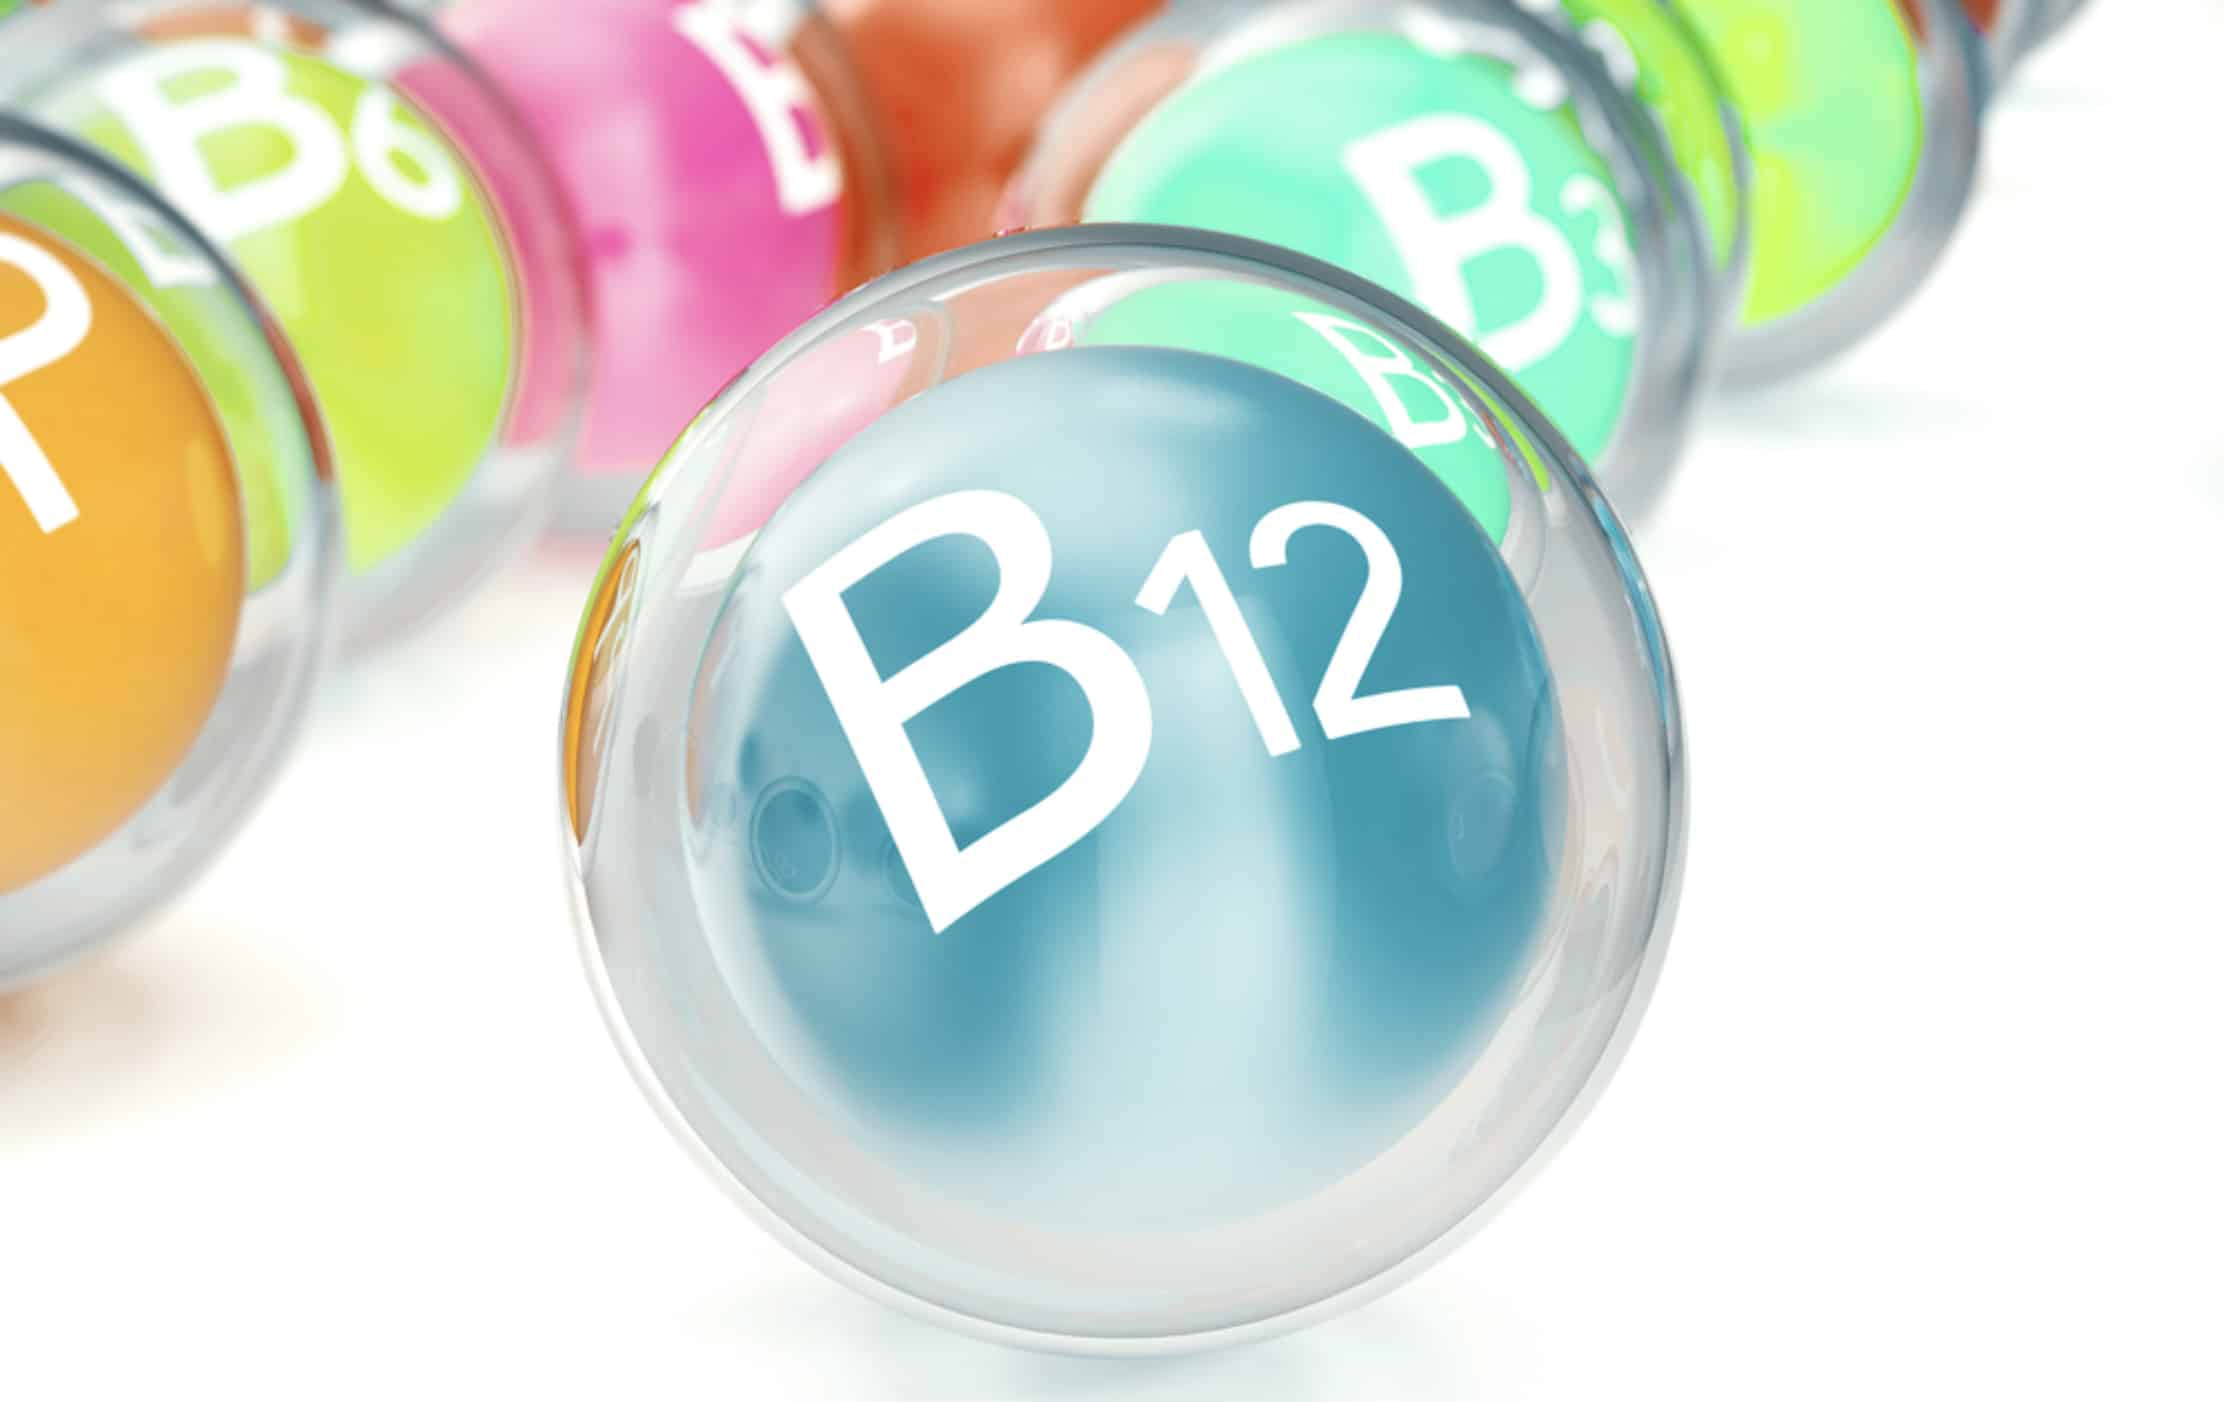 Gahanna OH B12 injection for weight loss - Gahanna OH B12 injection